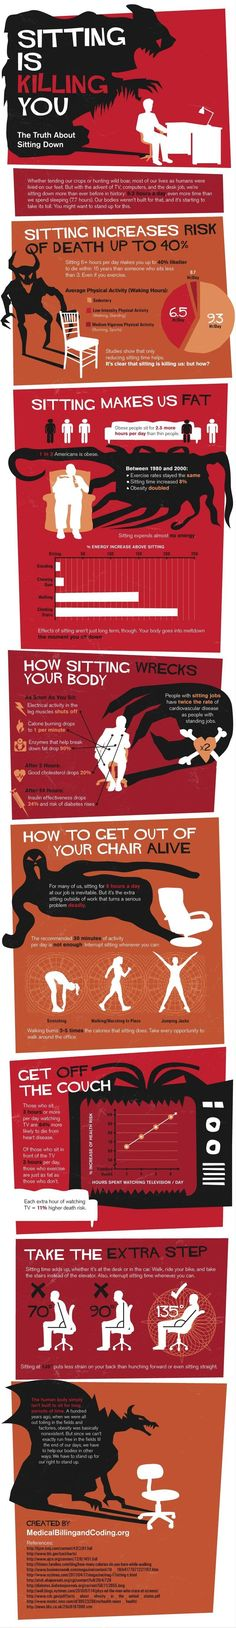 Sitting – Cause of Obesity and 'Death' A friendly #infographic on why TamsinFD has a stand up desk!